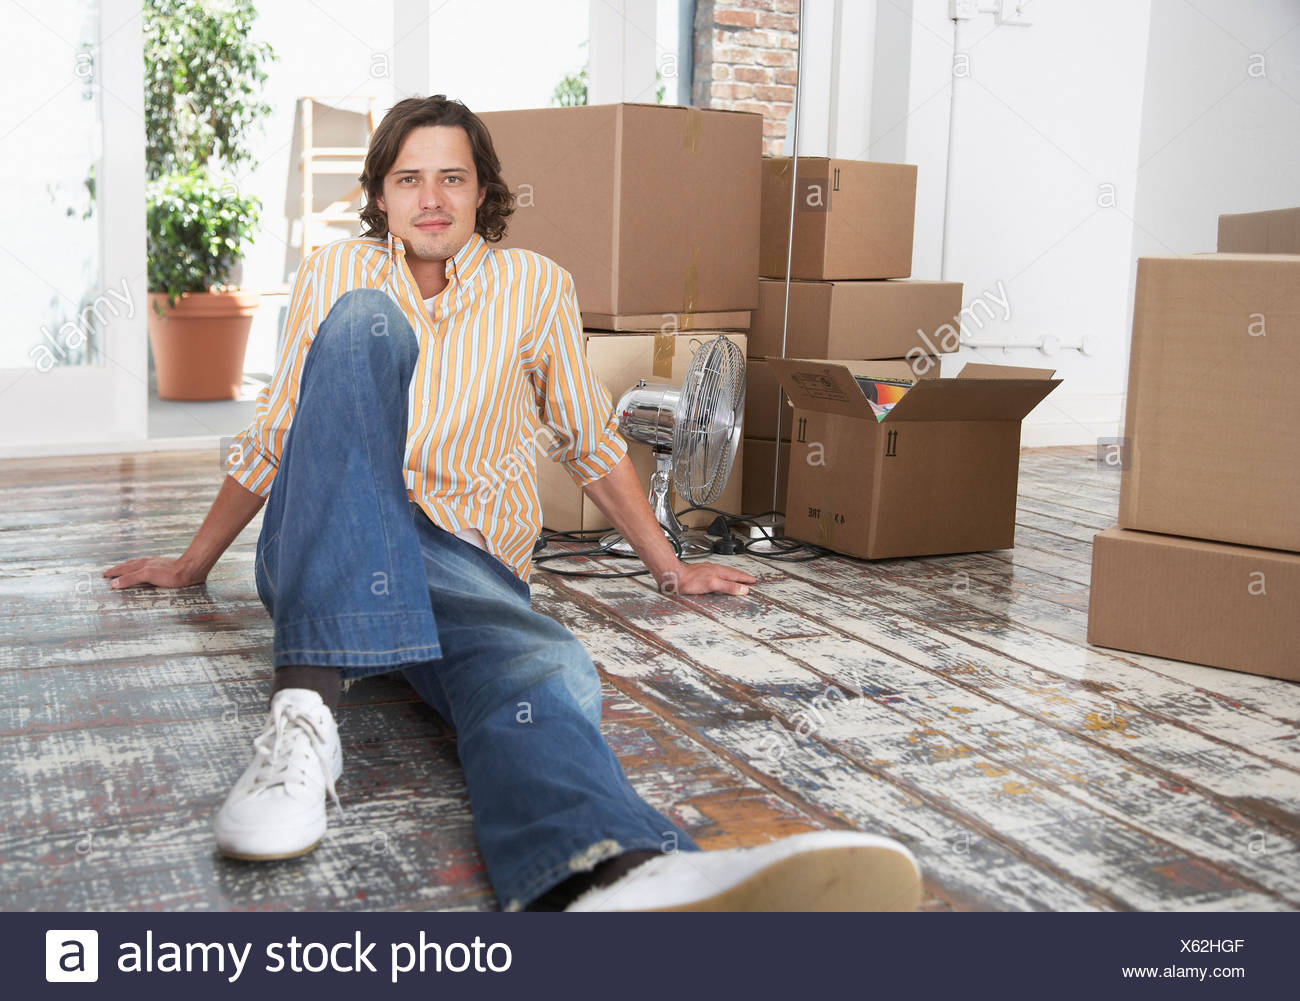 Man sitting on hardwood floor with cardboard boxes and potted plants smiling - Stock Image